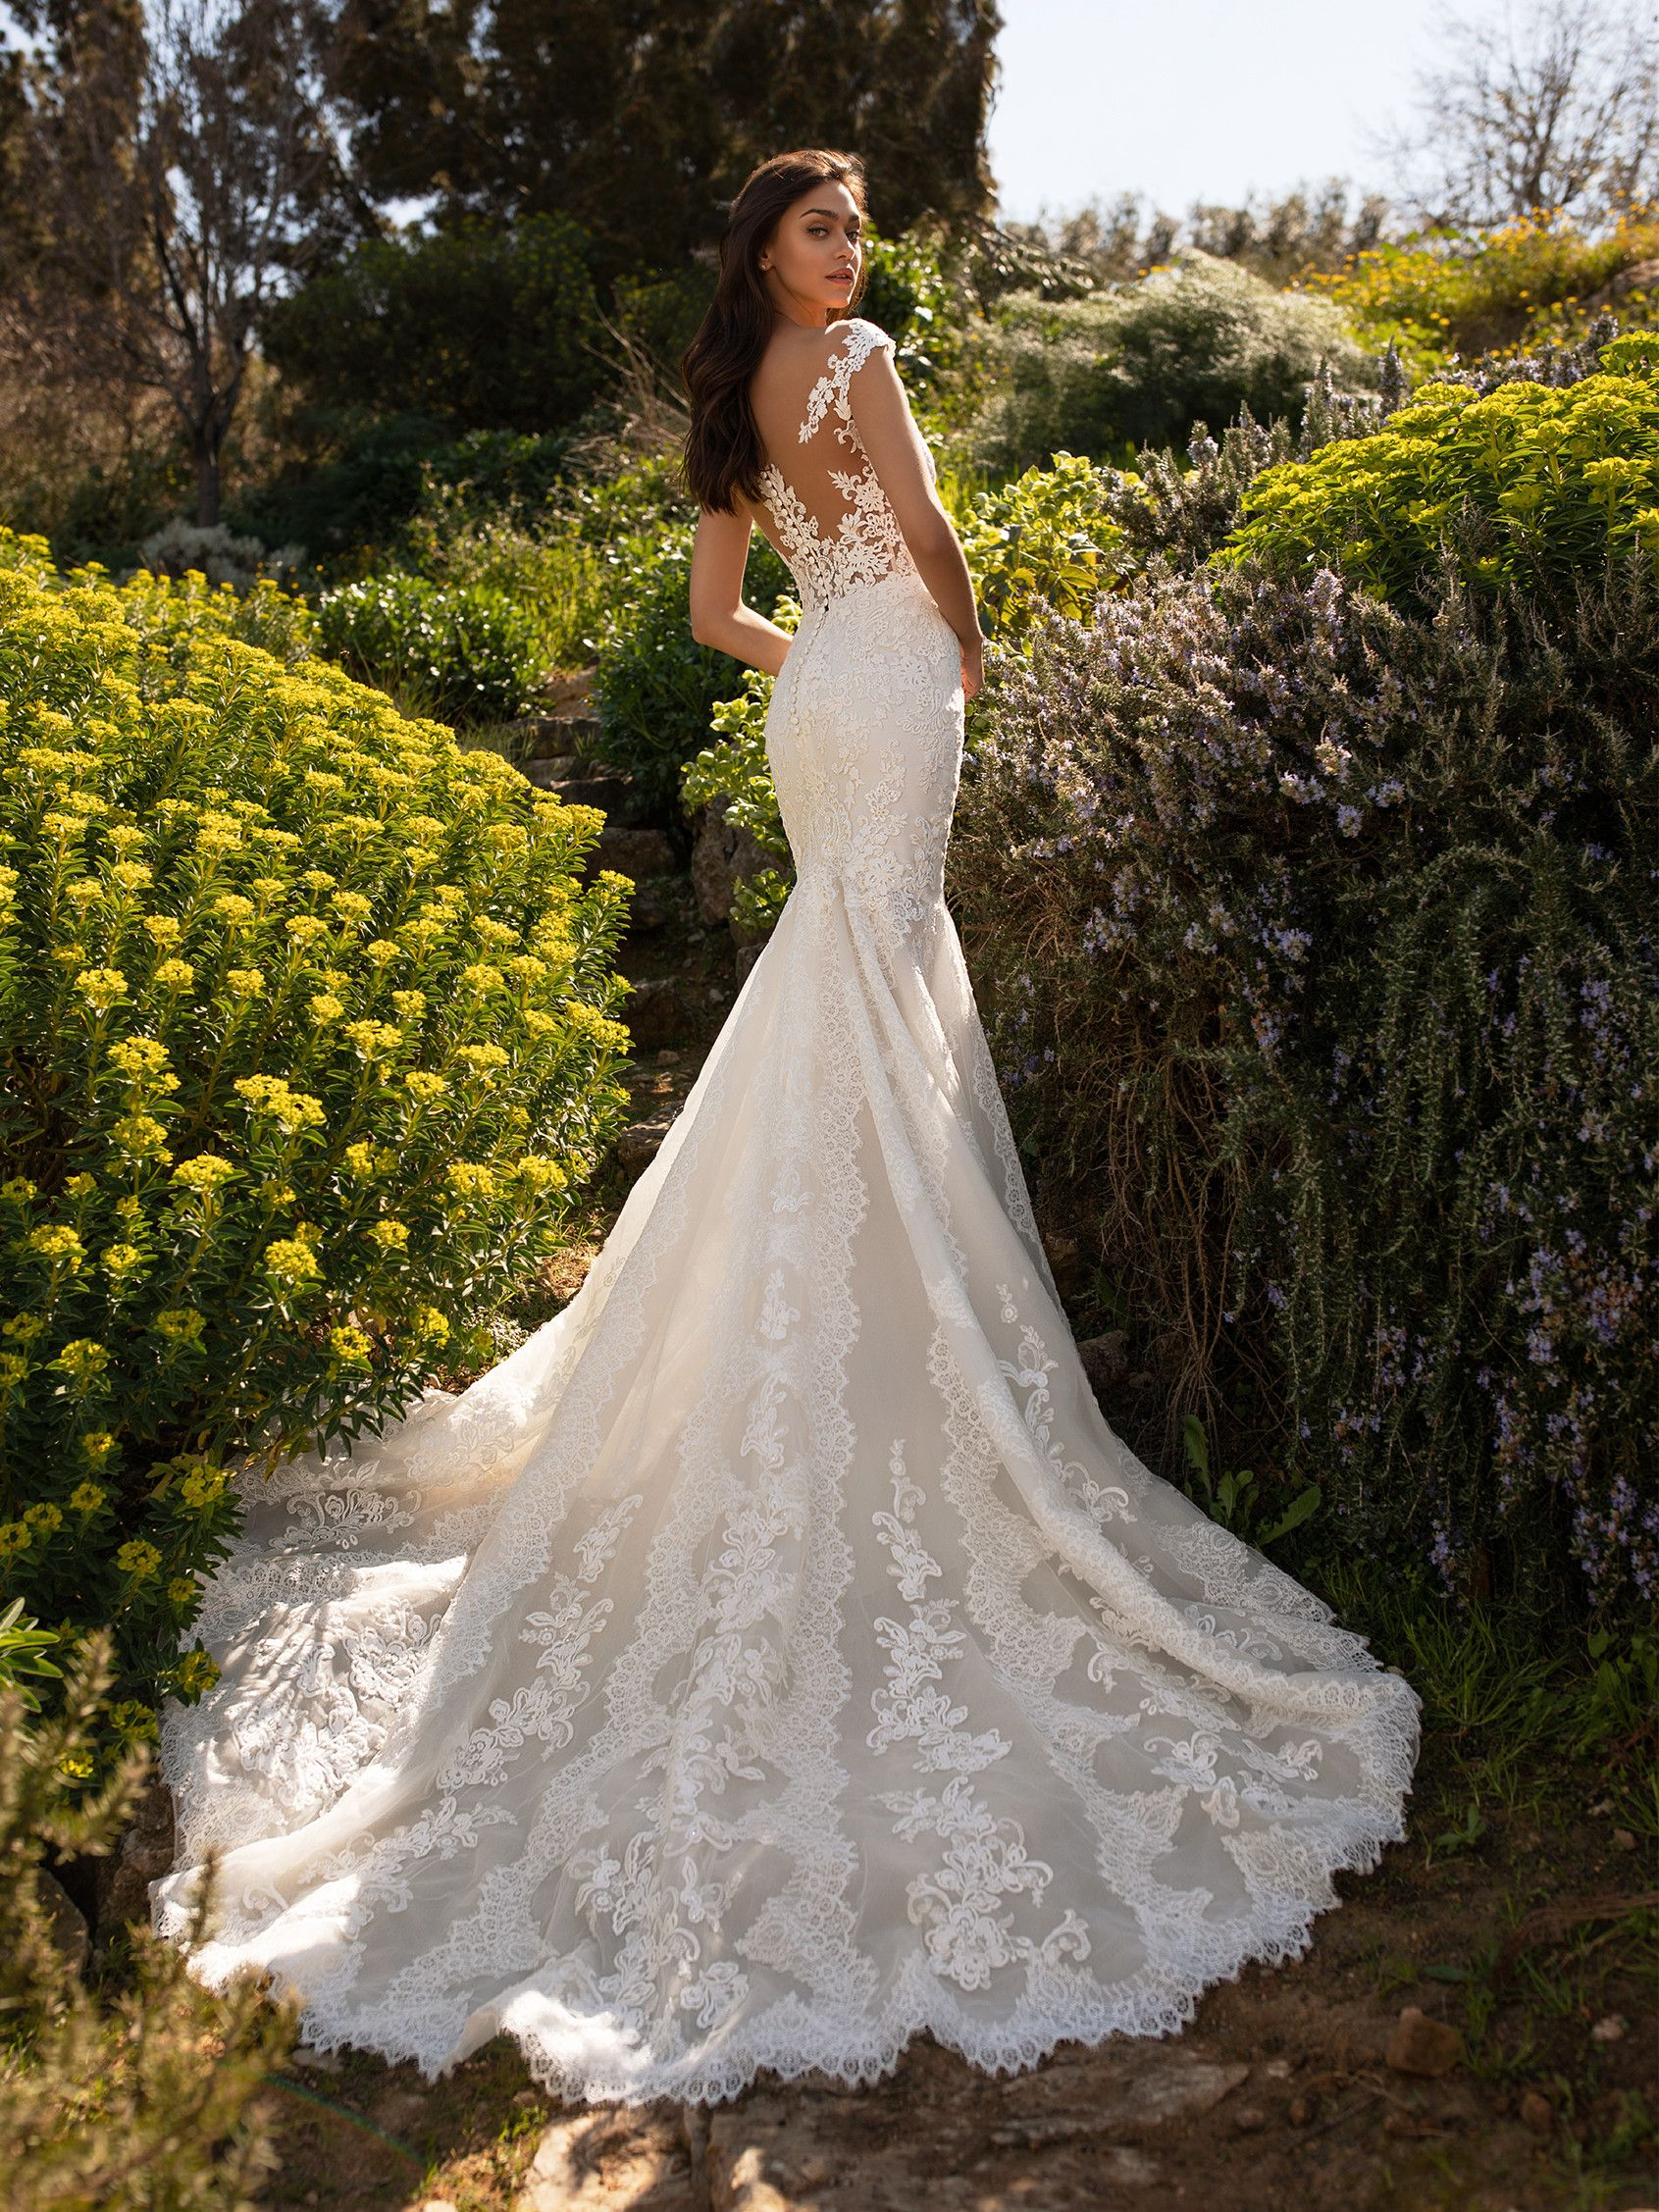 Mermaid Wedding Gown With Lace Placements Pronovias Lace Back Wedding Dress Wedding Dress Guide Wedding Dress Styles [ 2255 x 1691 Pixel ]